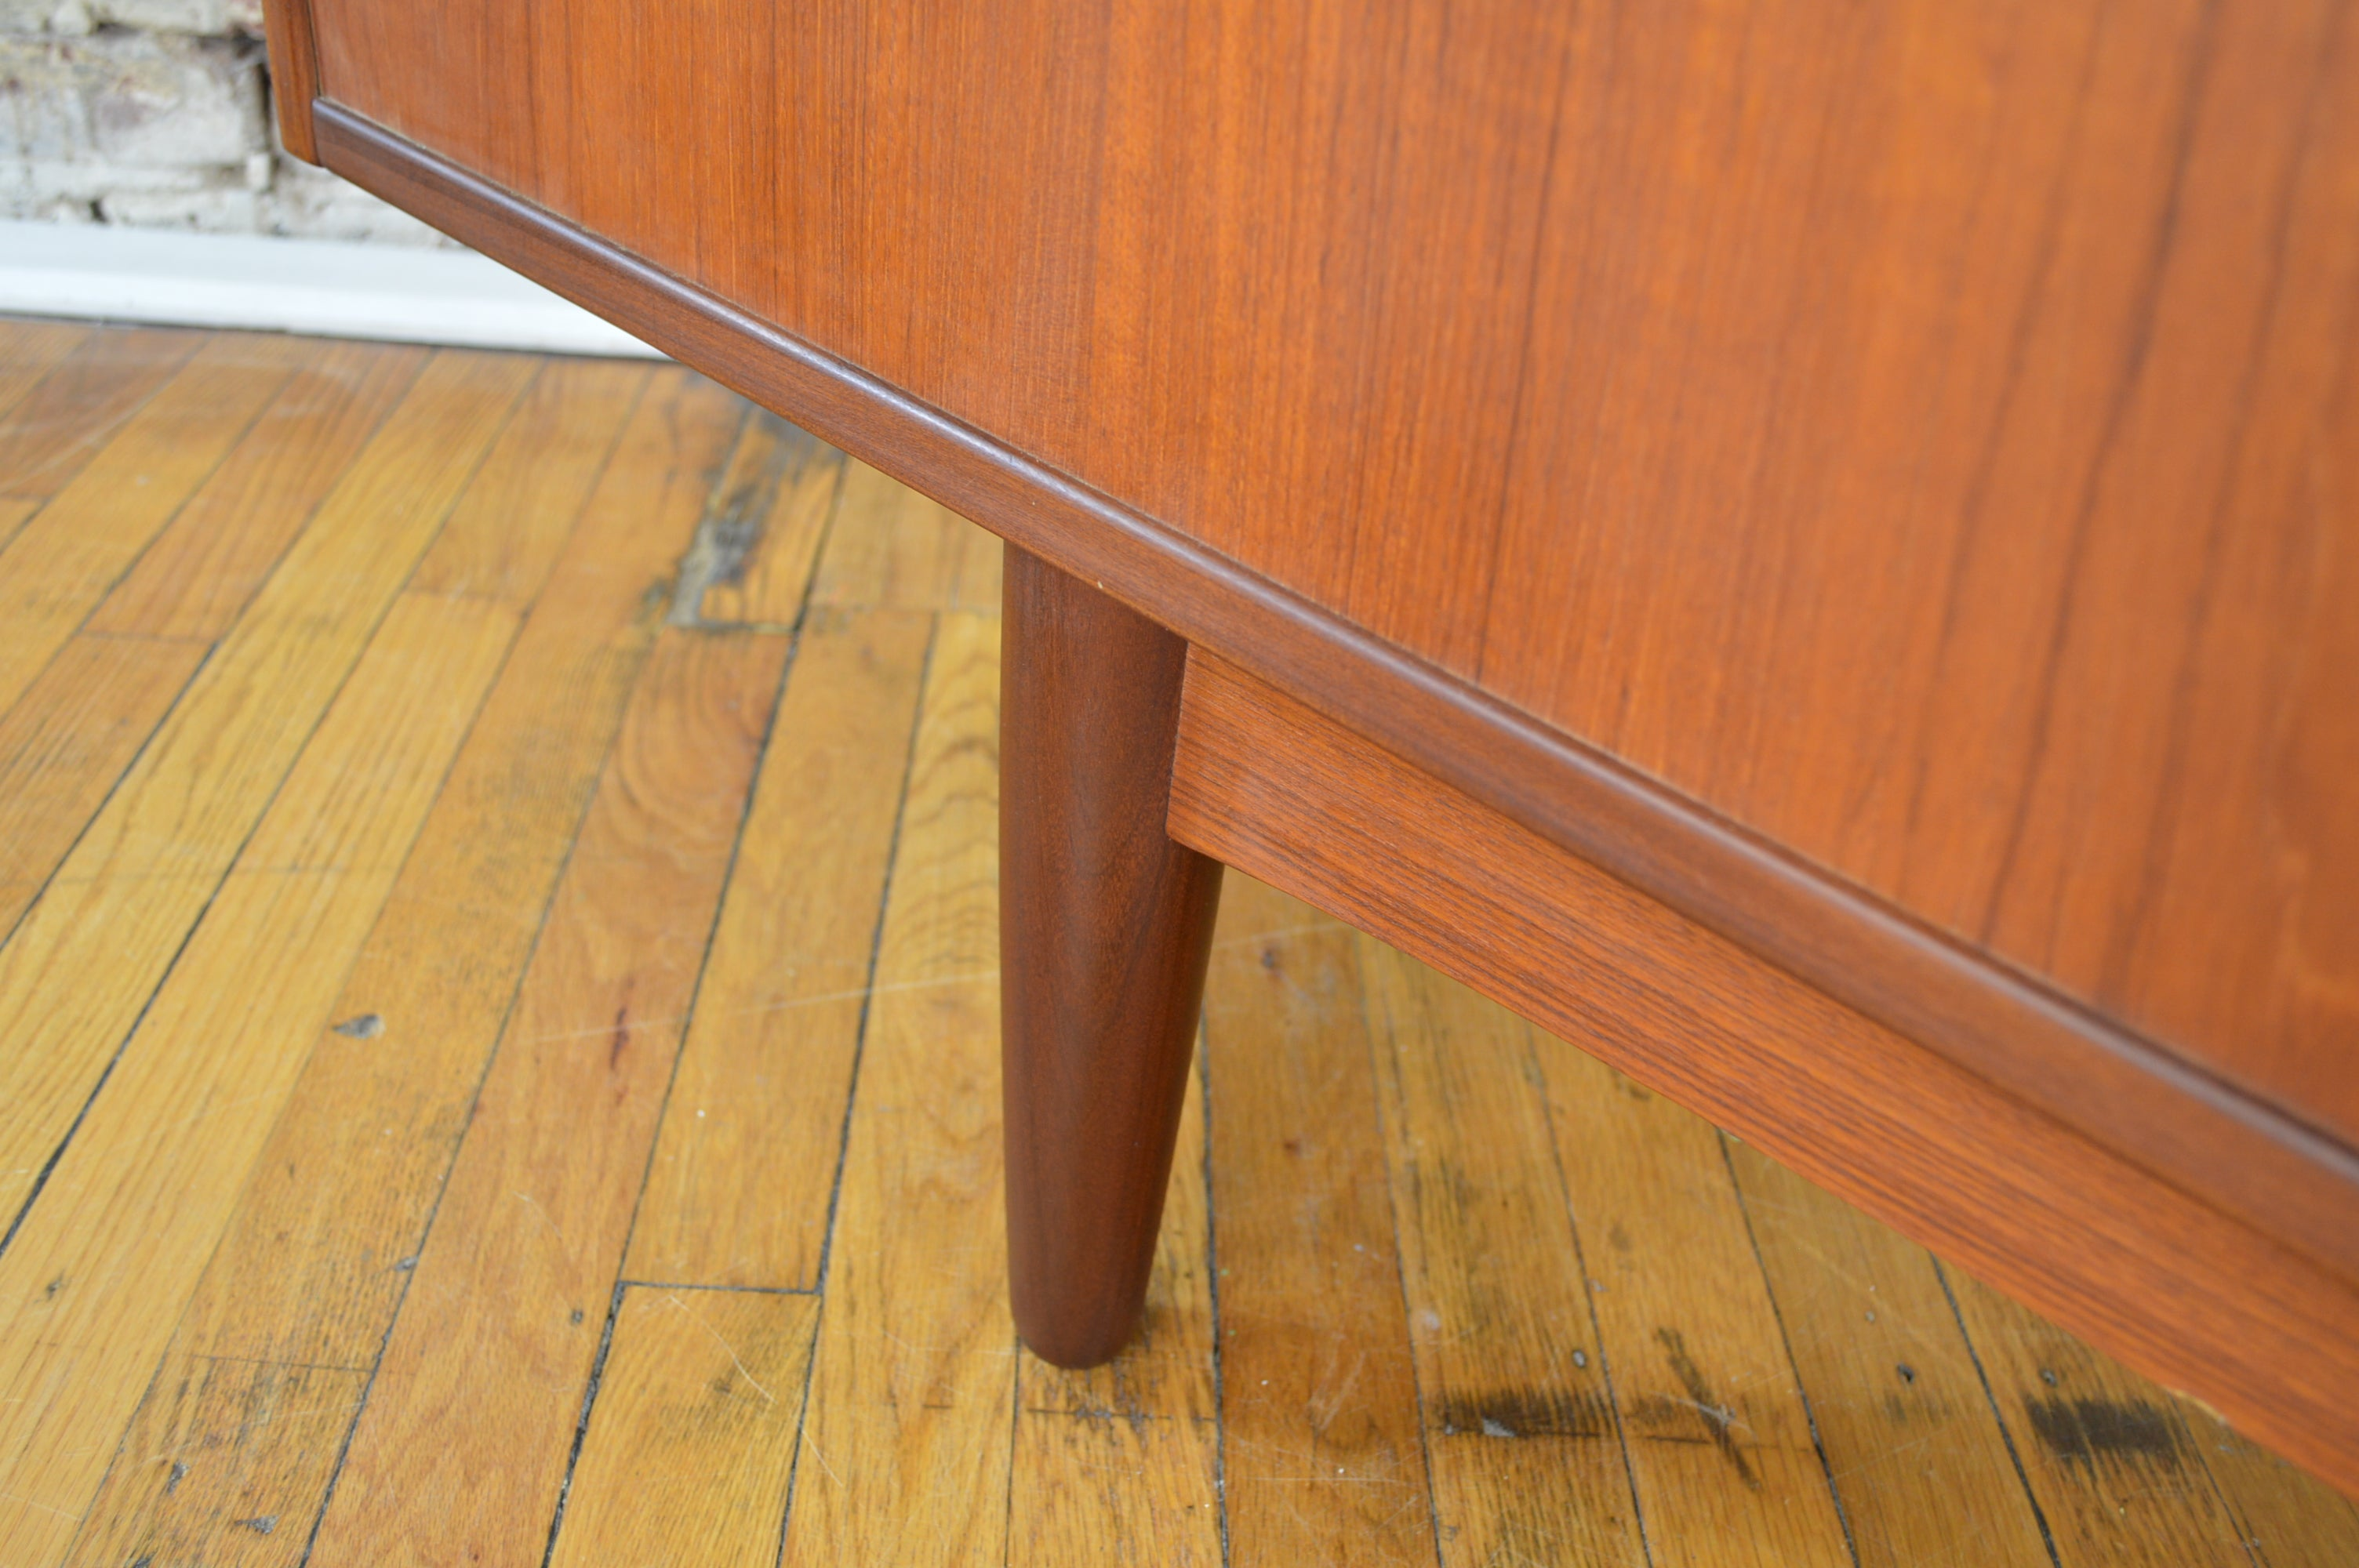 2d47e0543671 Danish Teak Credenza with Exposed Drawers - GalaxieModern